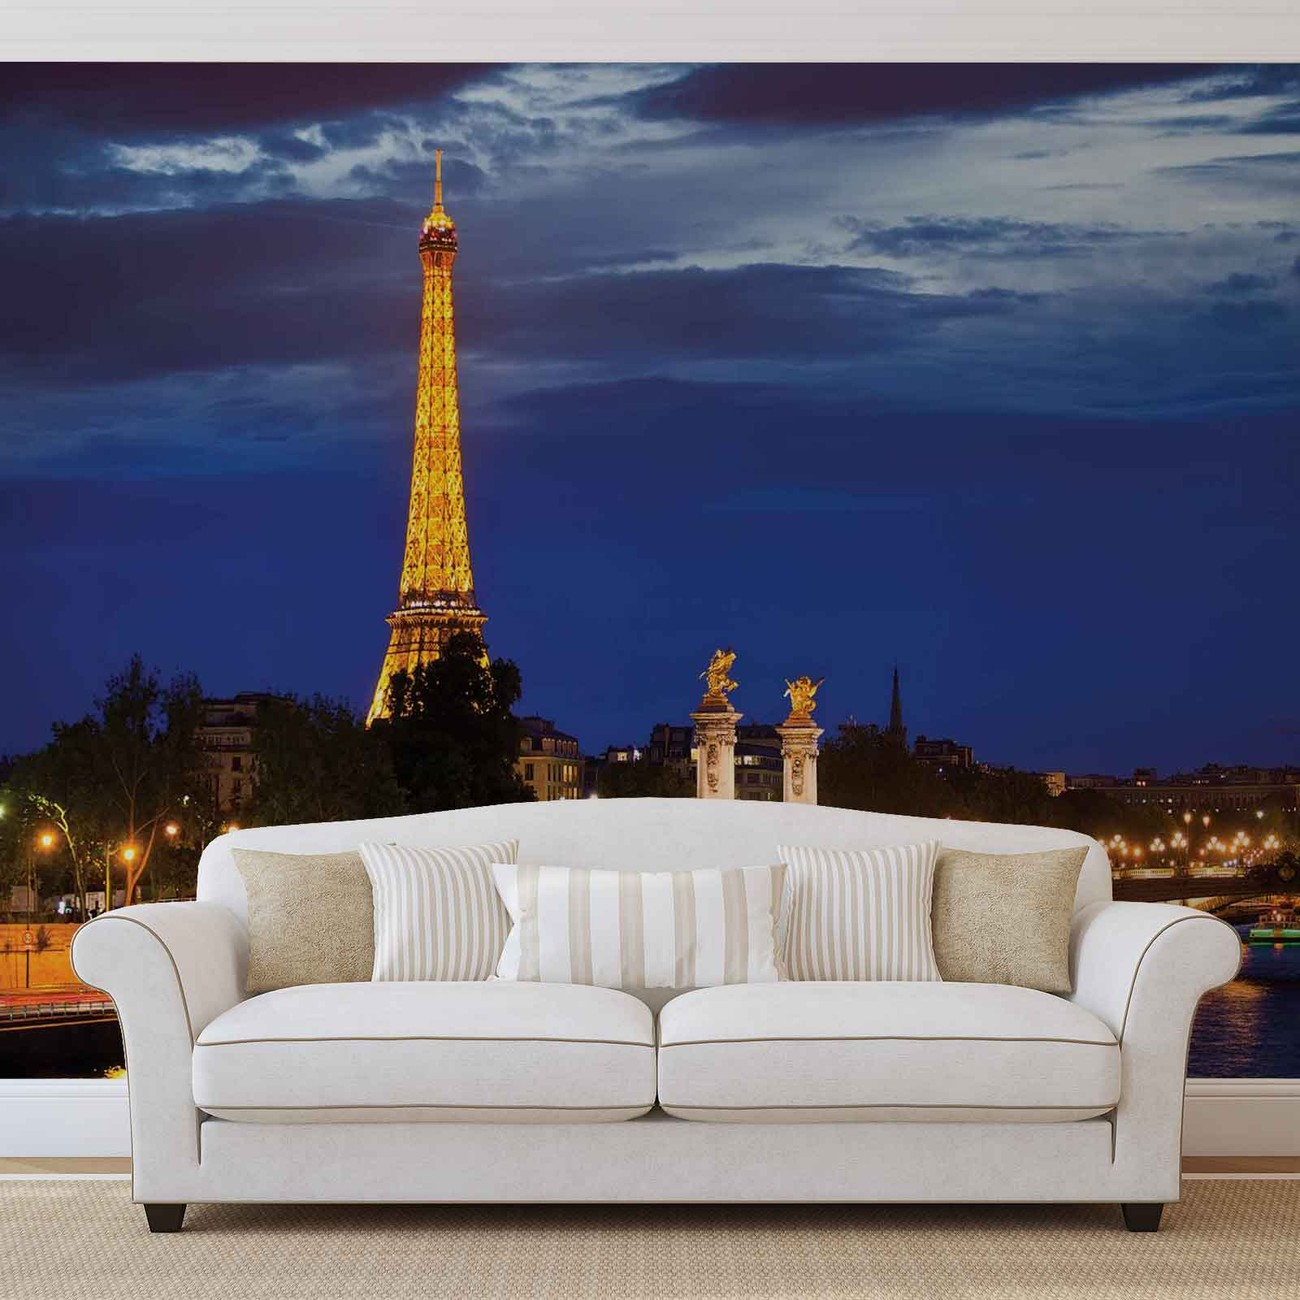 The eiffel tower wall paper mural buy at europosters for Eiffel tower wall mural ikea